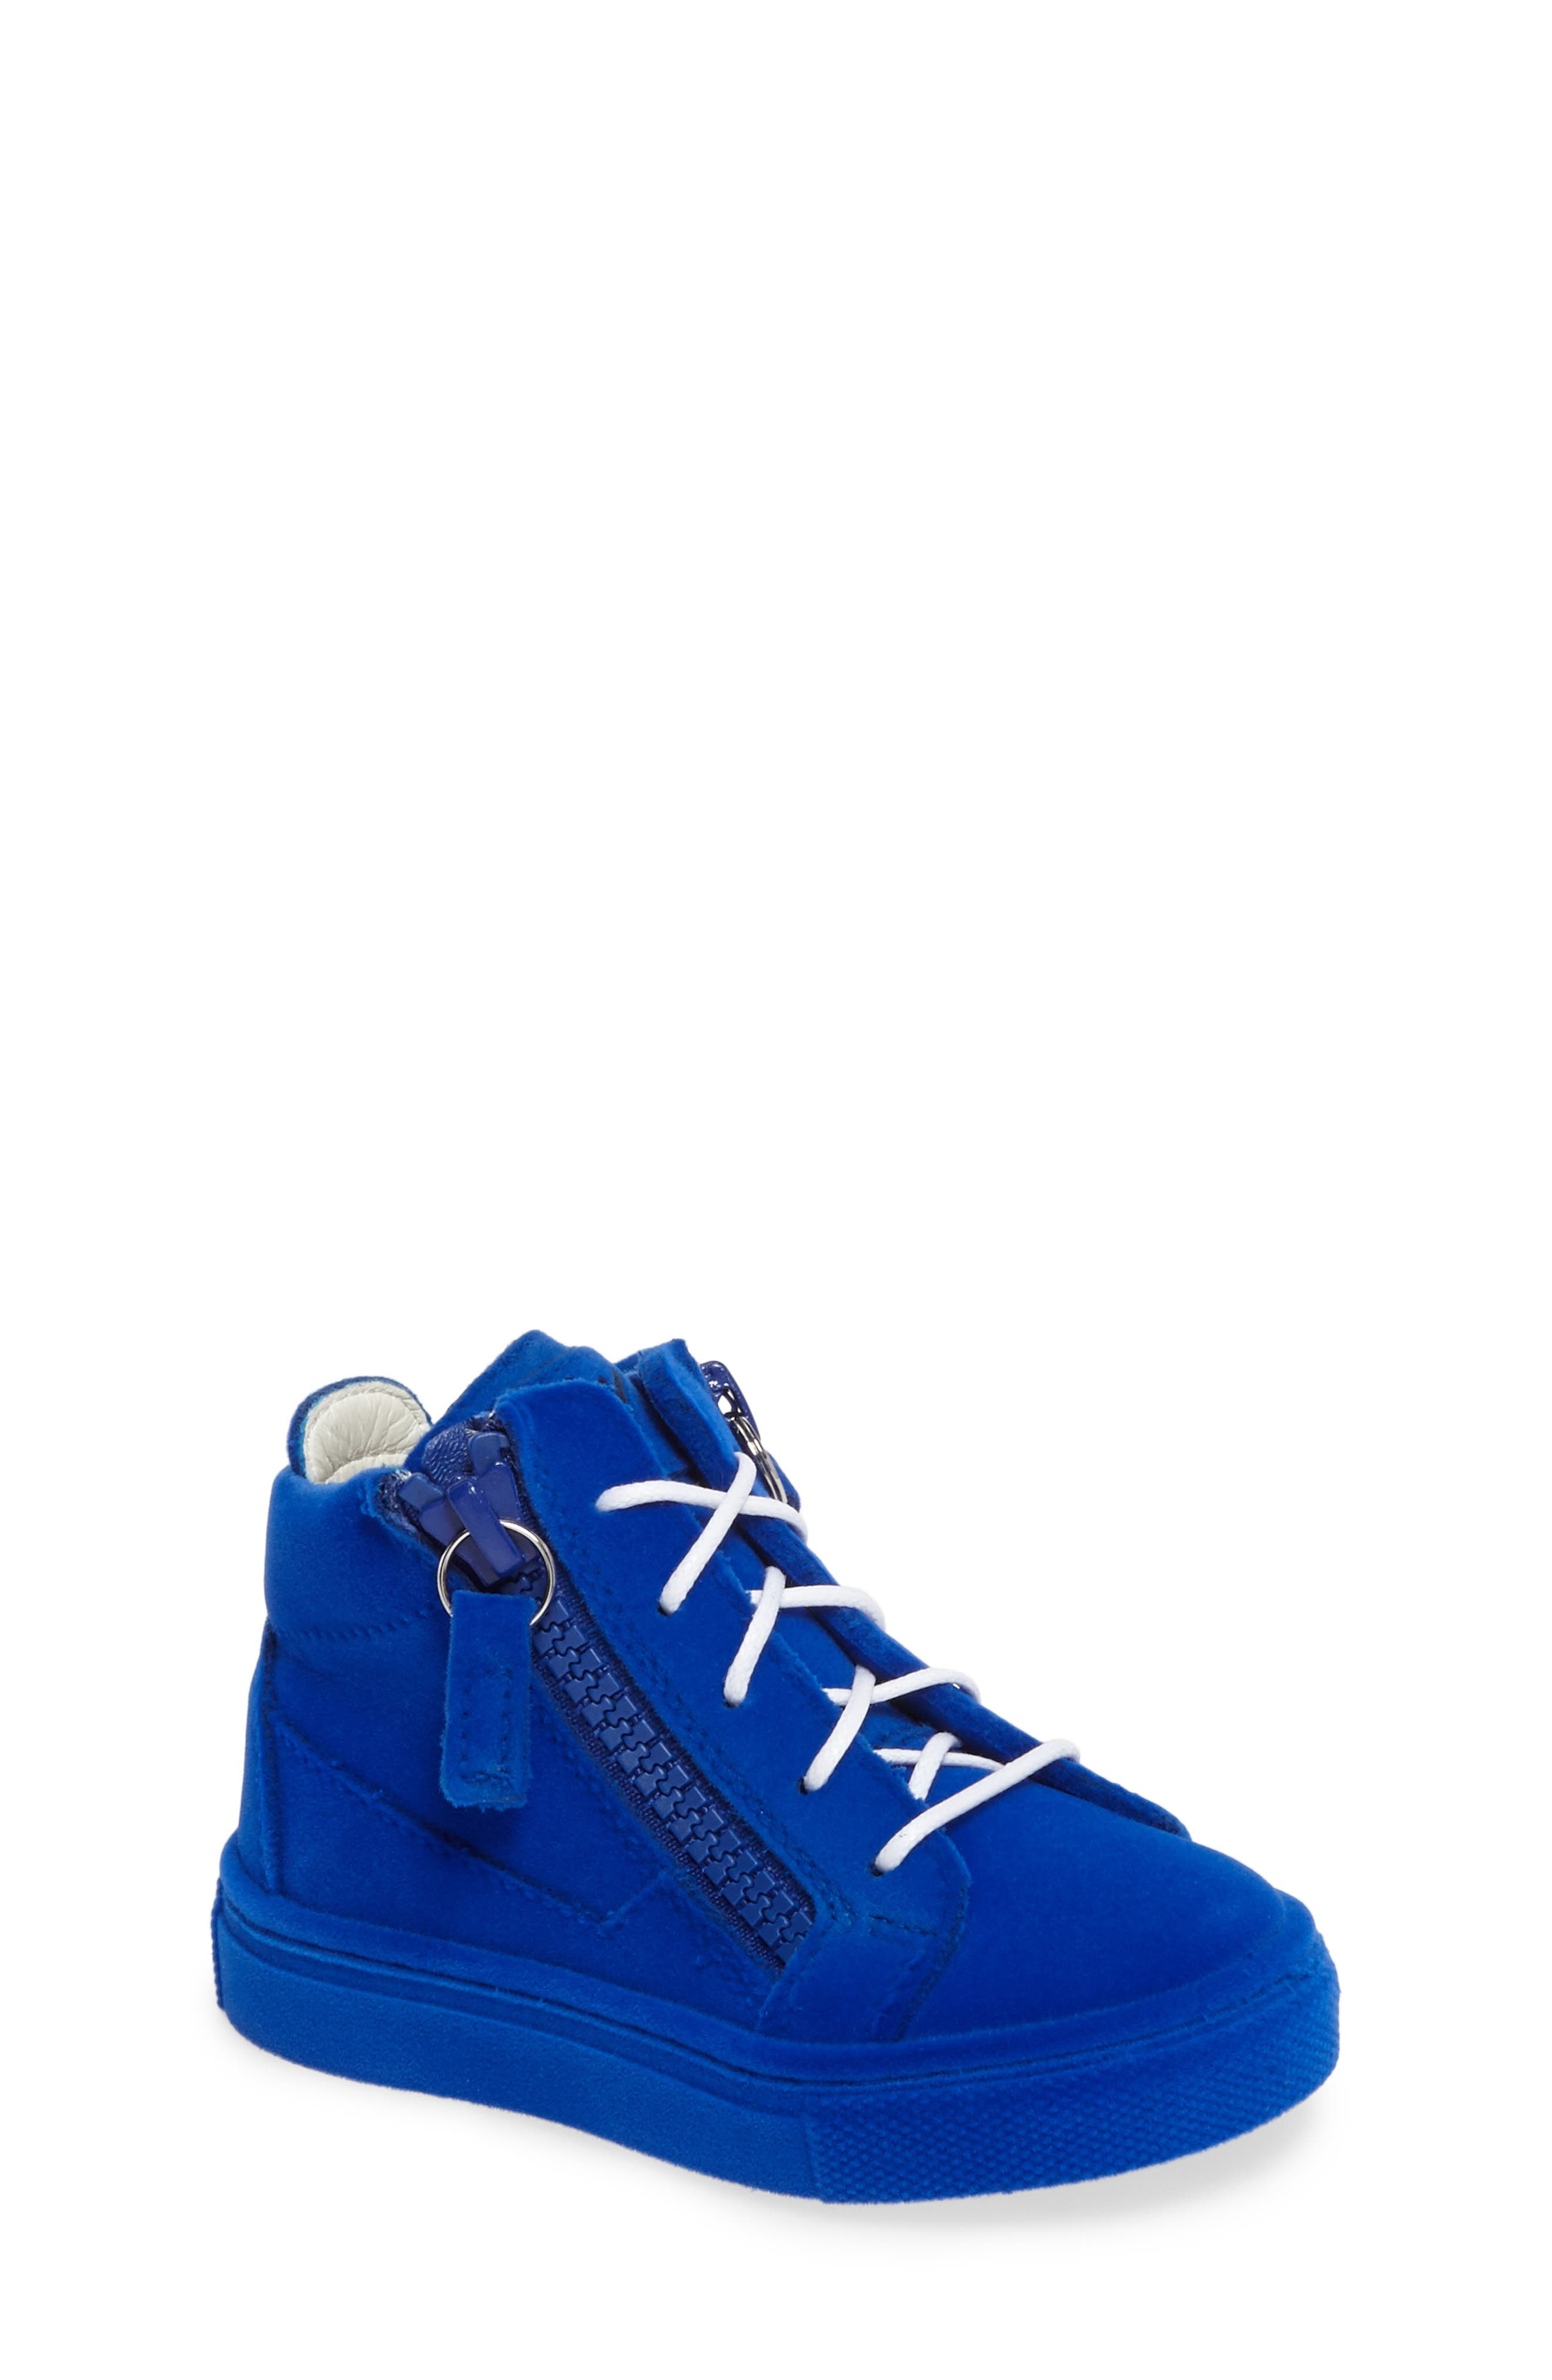 Giuseppe Zanotti Smuggy Sneaker (Baby, Walker, Toddler & Little Kid)